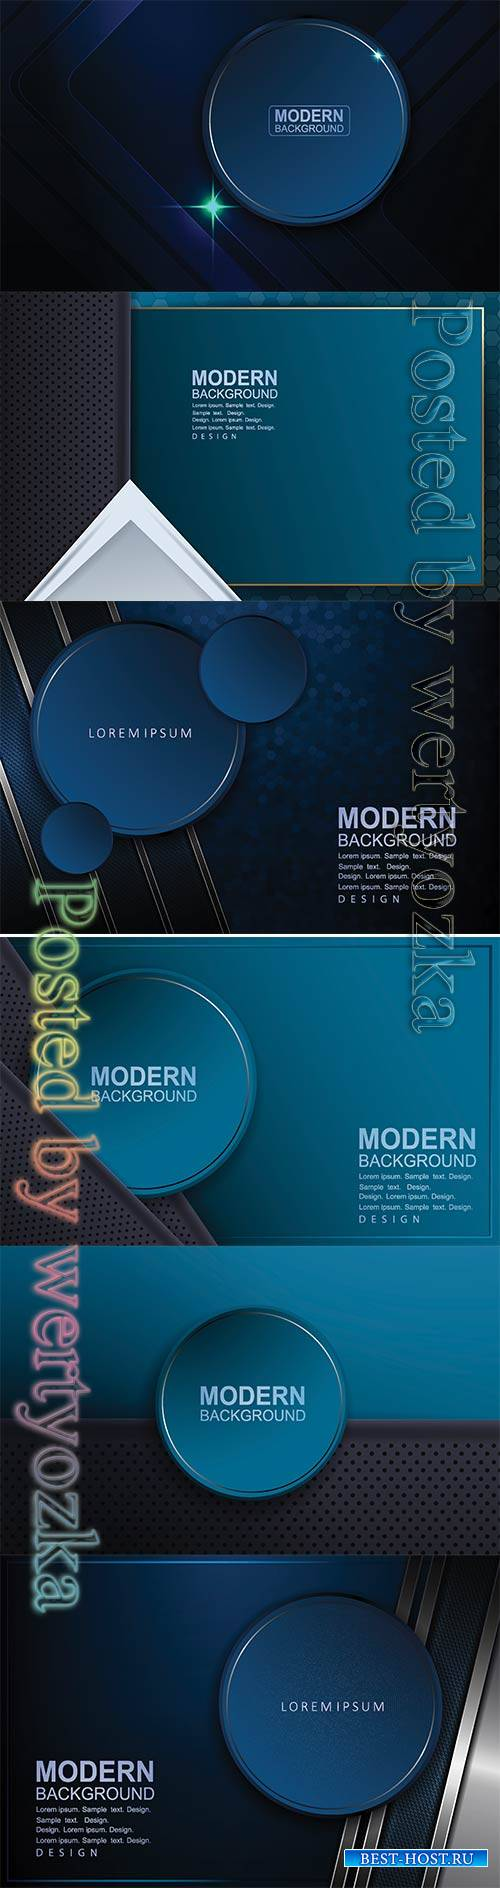 Abstract luxury vector backgrounds with different shapes # 3